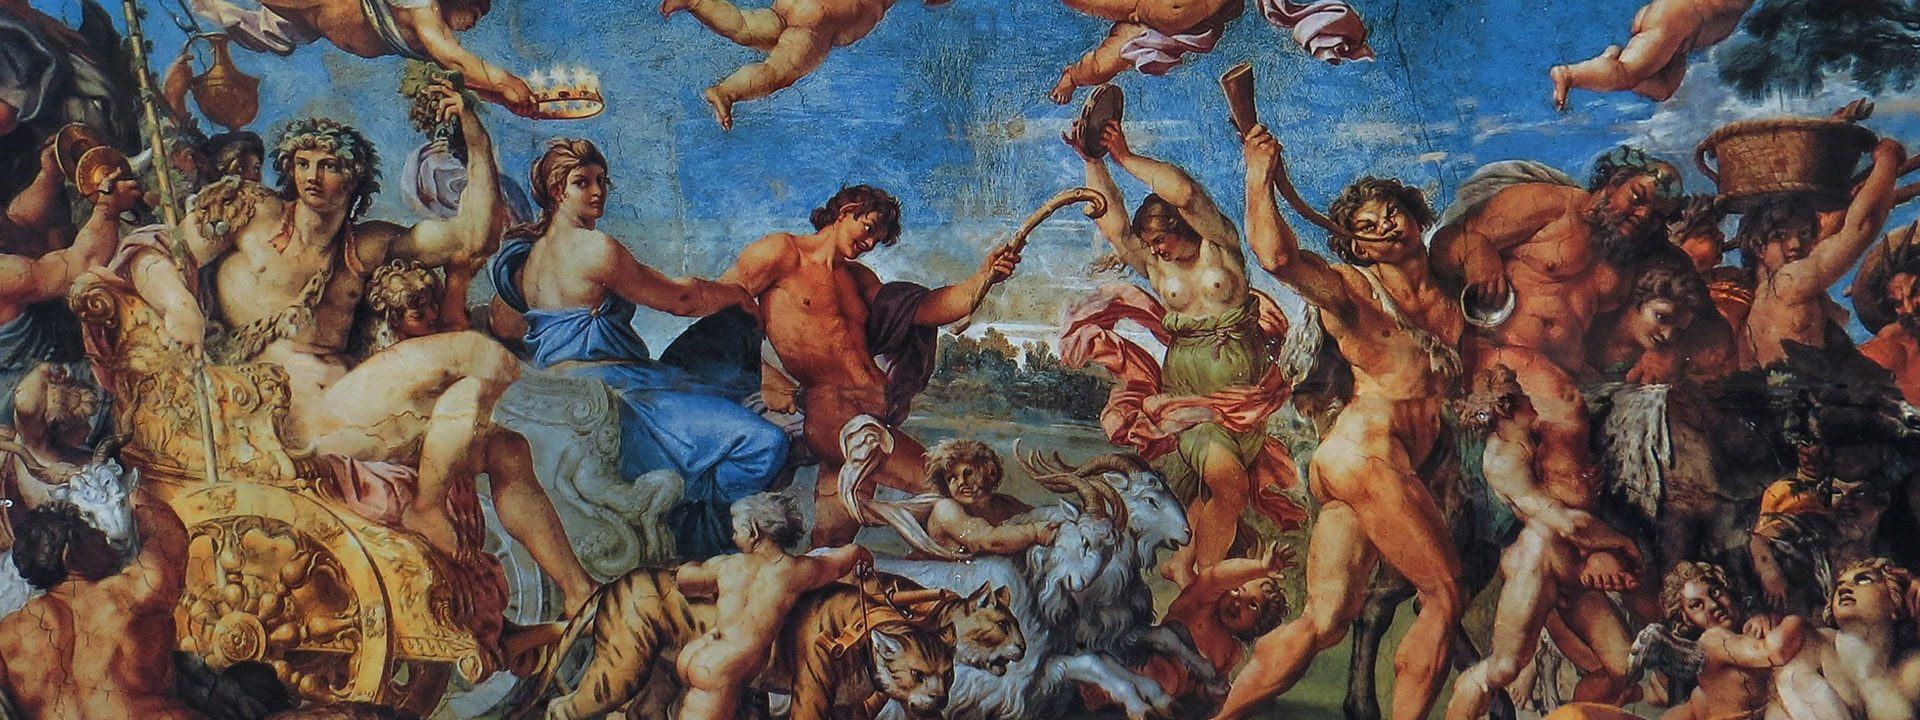 Evolution and Original Sin: The Historical/Ideal View